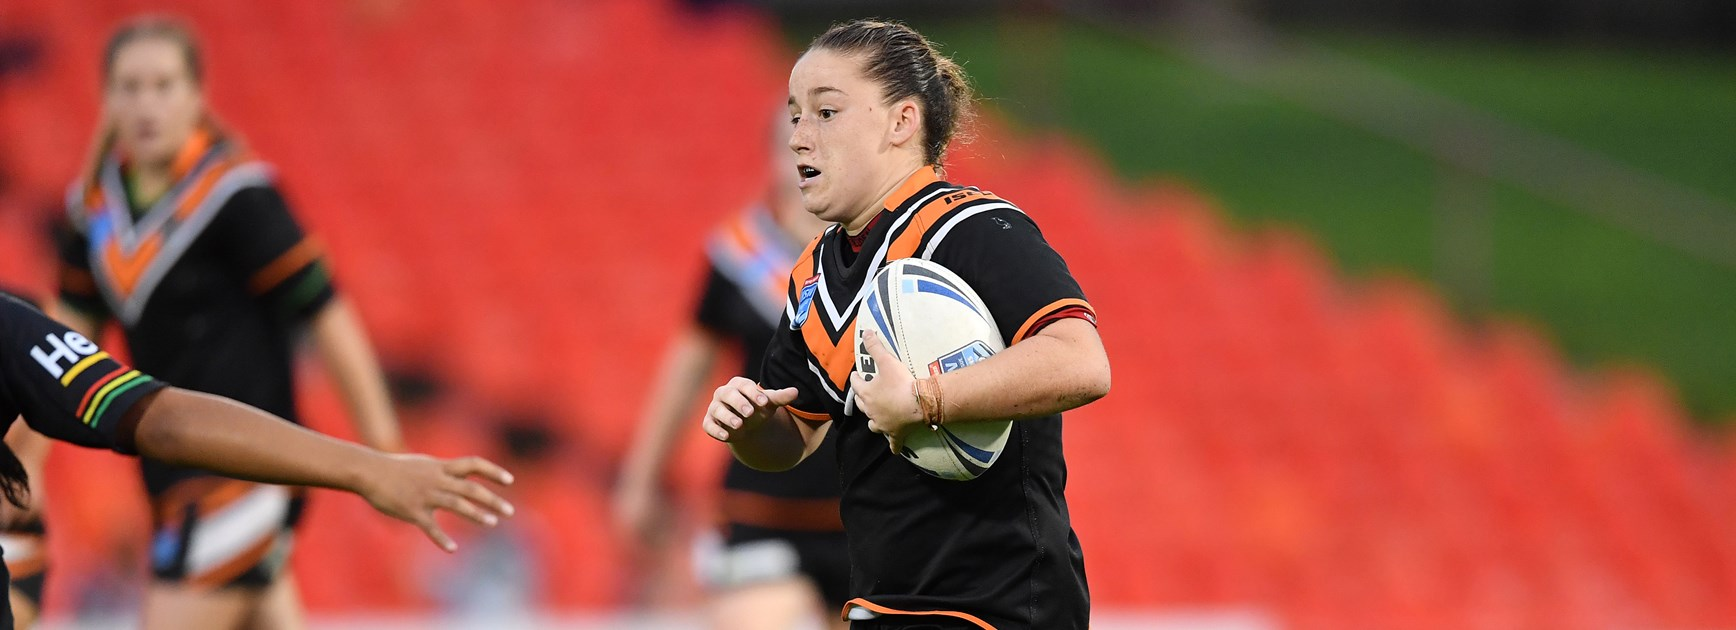 Join Wests Tigers U/16's Lisa Fiaola Squad